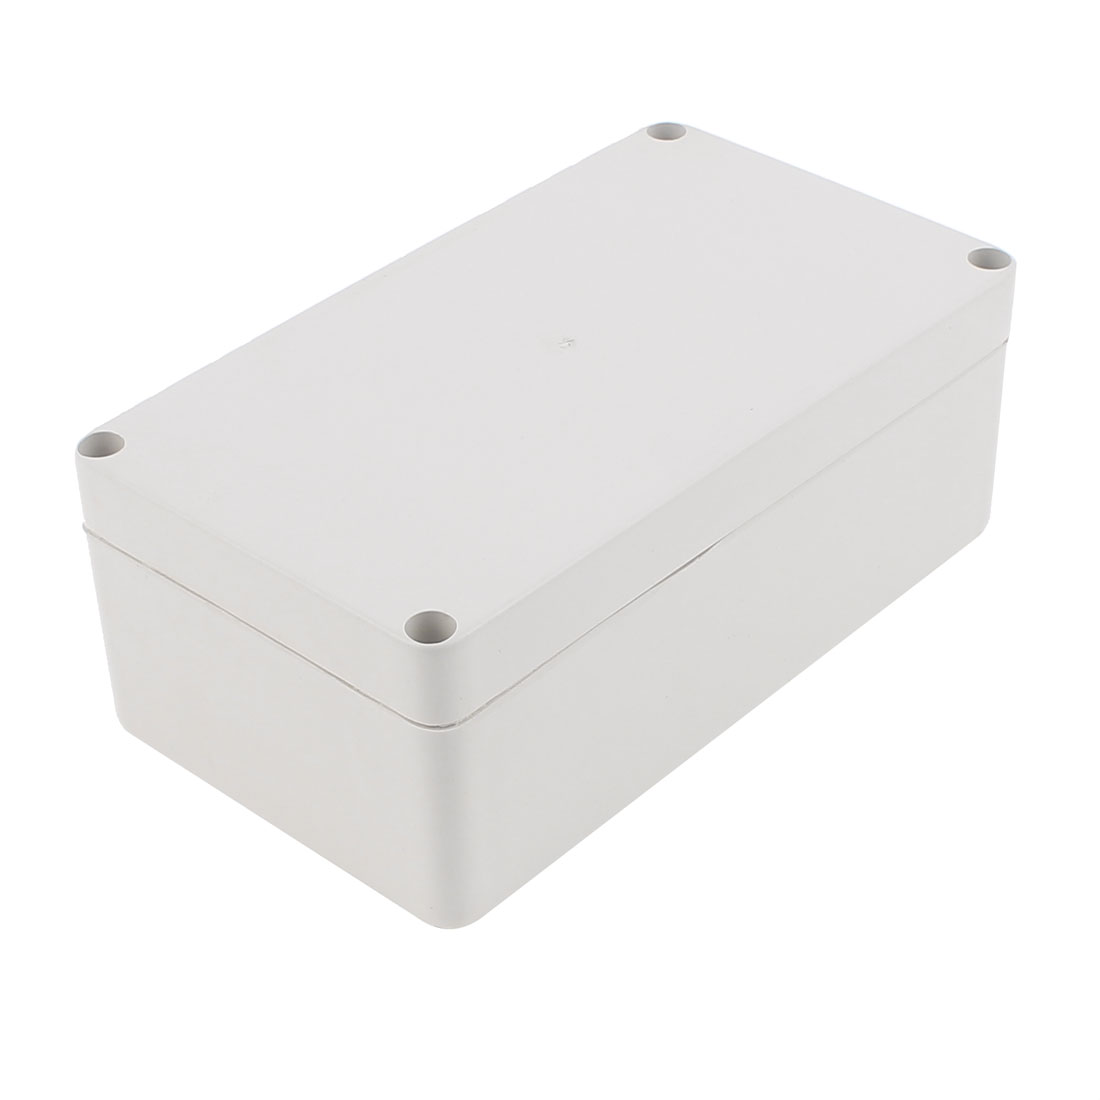 158 x 90 x 60mm Dustproof IP65 Junction Box Terminal Connecting Box Enclosure